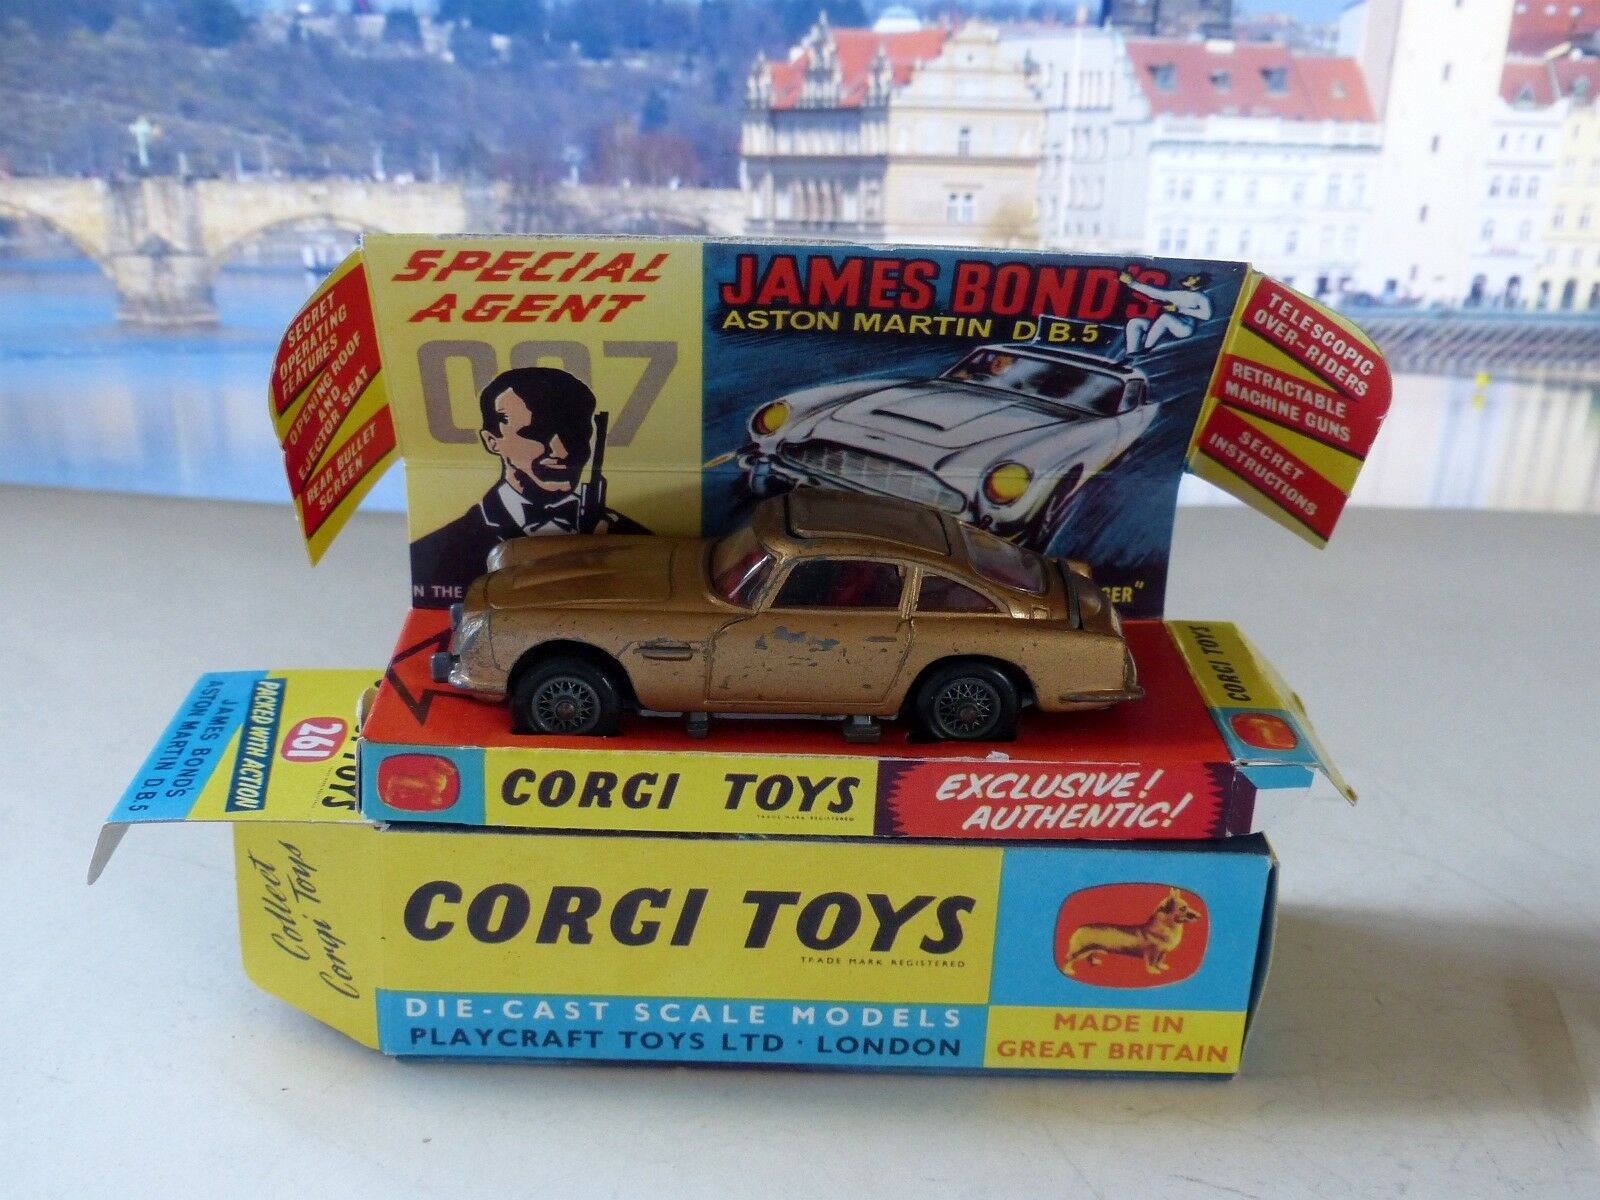 CORGI TOYS 261 JAMES BOND ASTON MARTIN avec bonne reproduction box